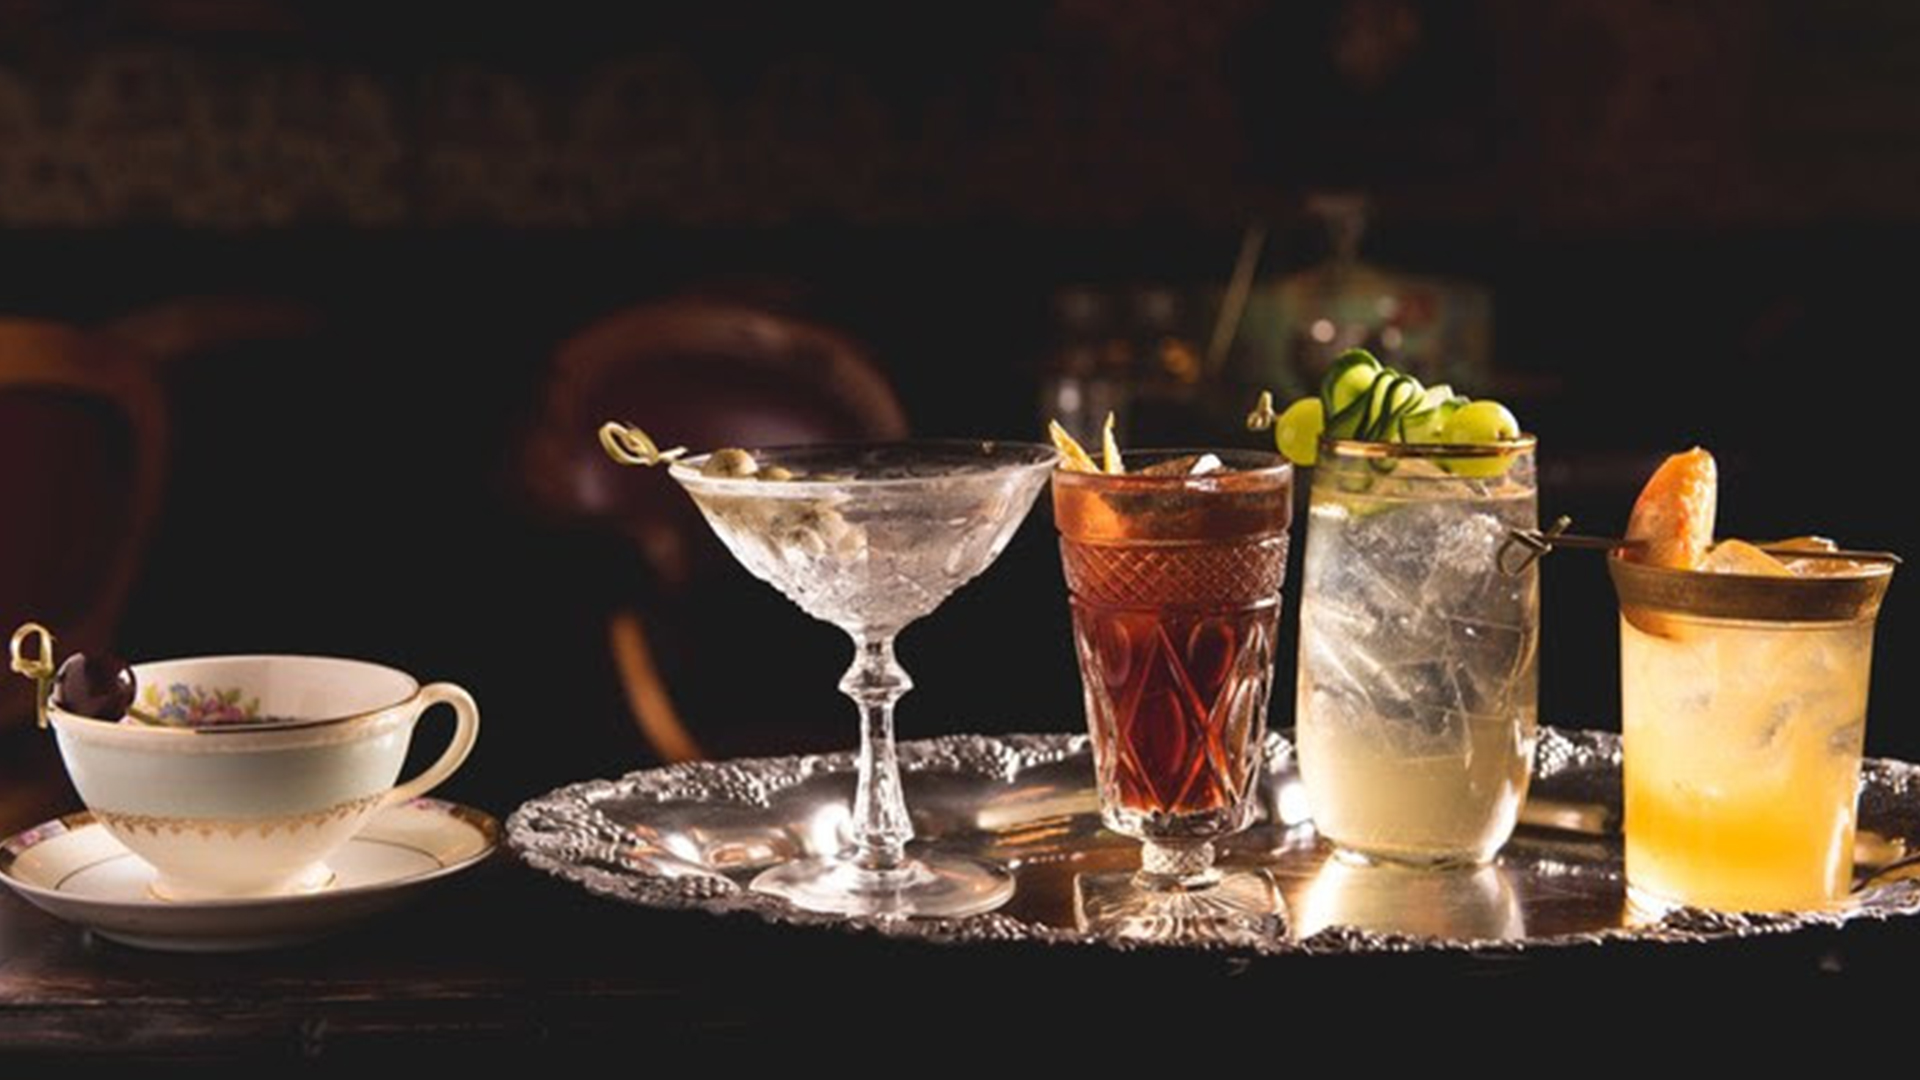 A silver platter holds three distinct types of upscale mixed drinks alongside a coffee cup